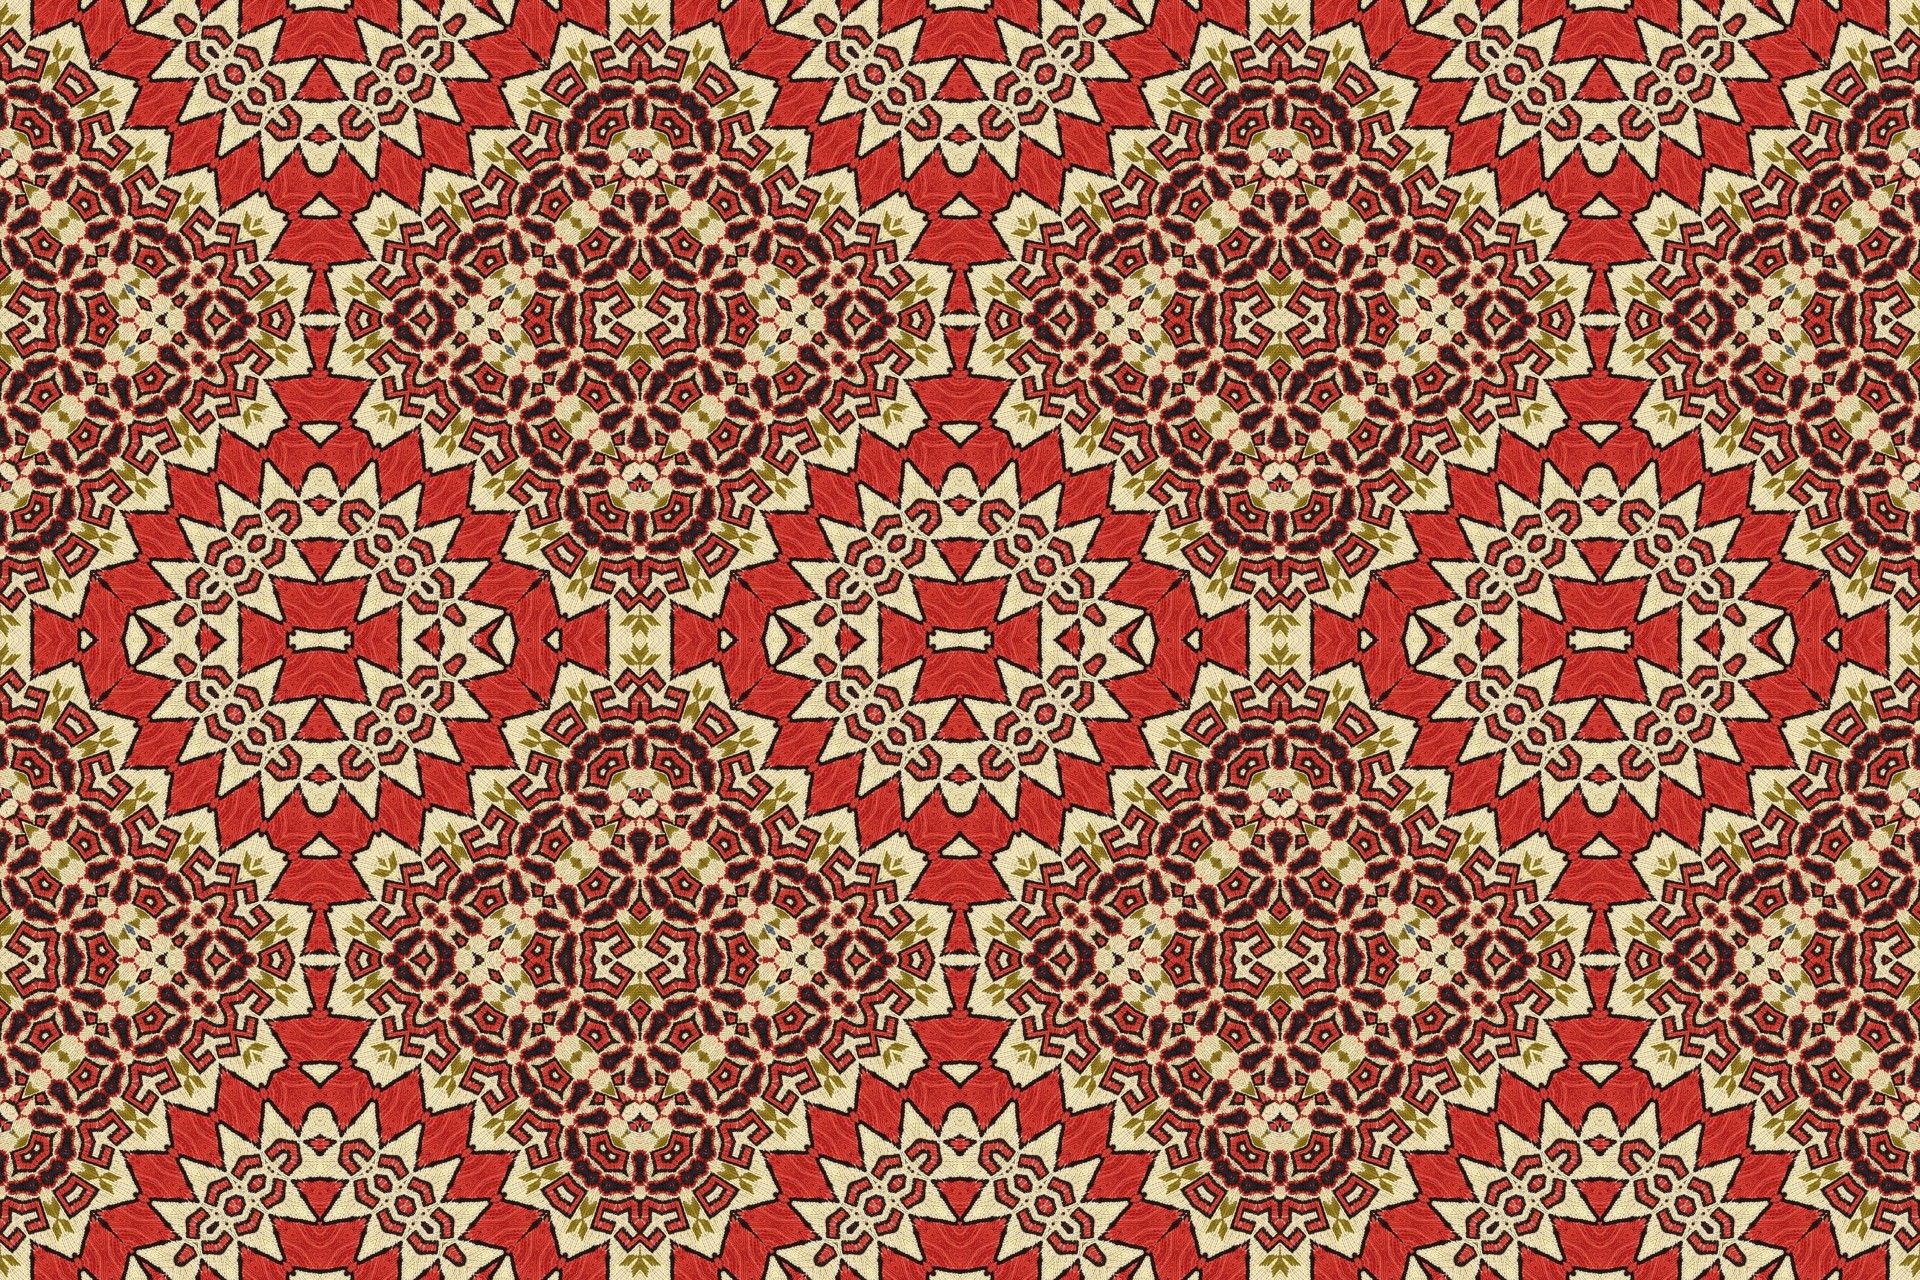 Seamless Pattern Based On Turkish Carpet For Your